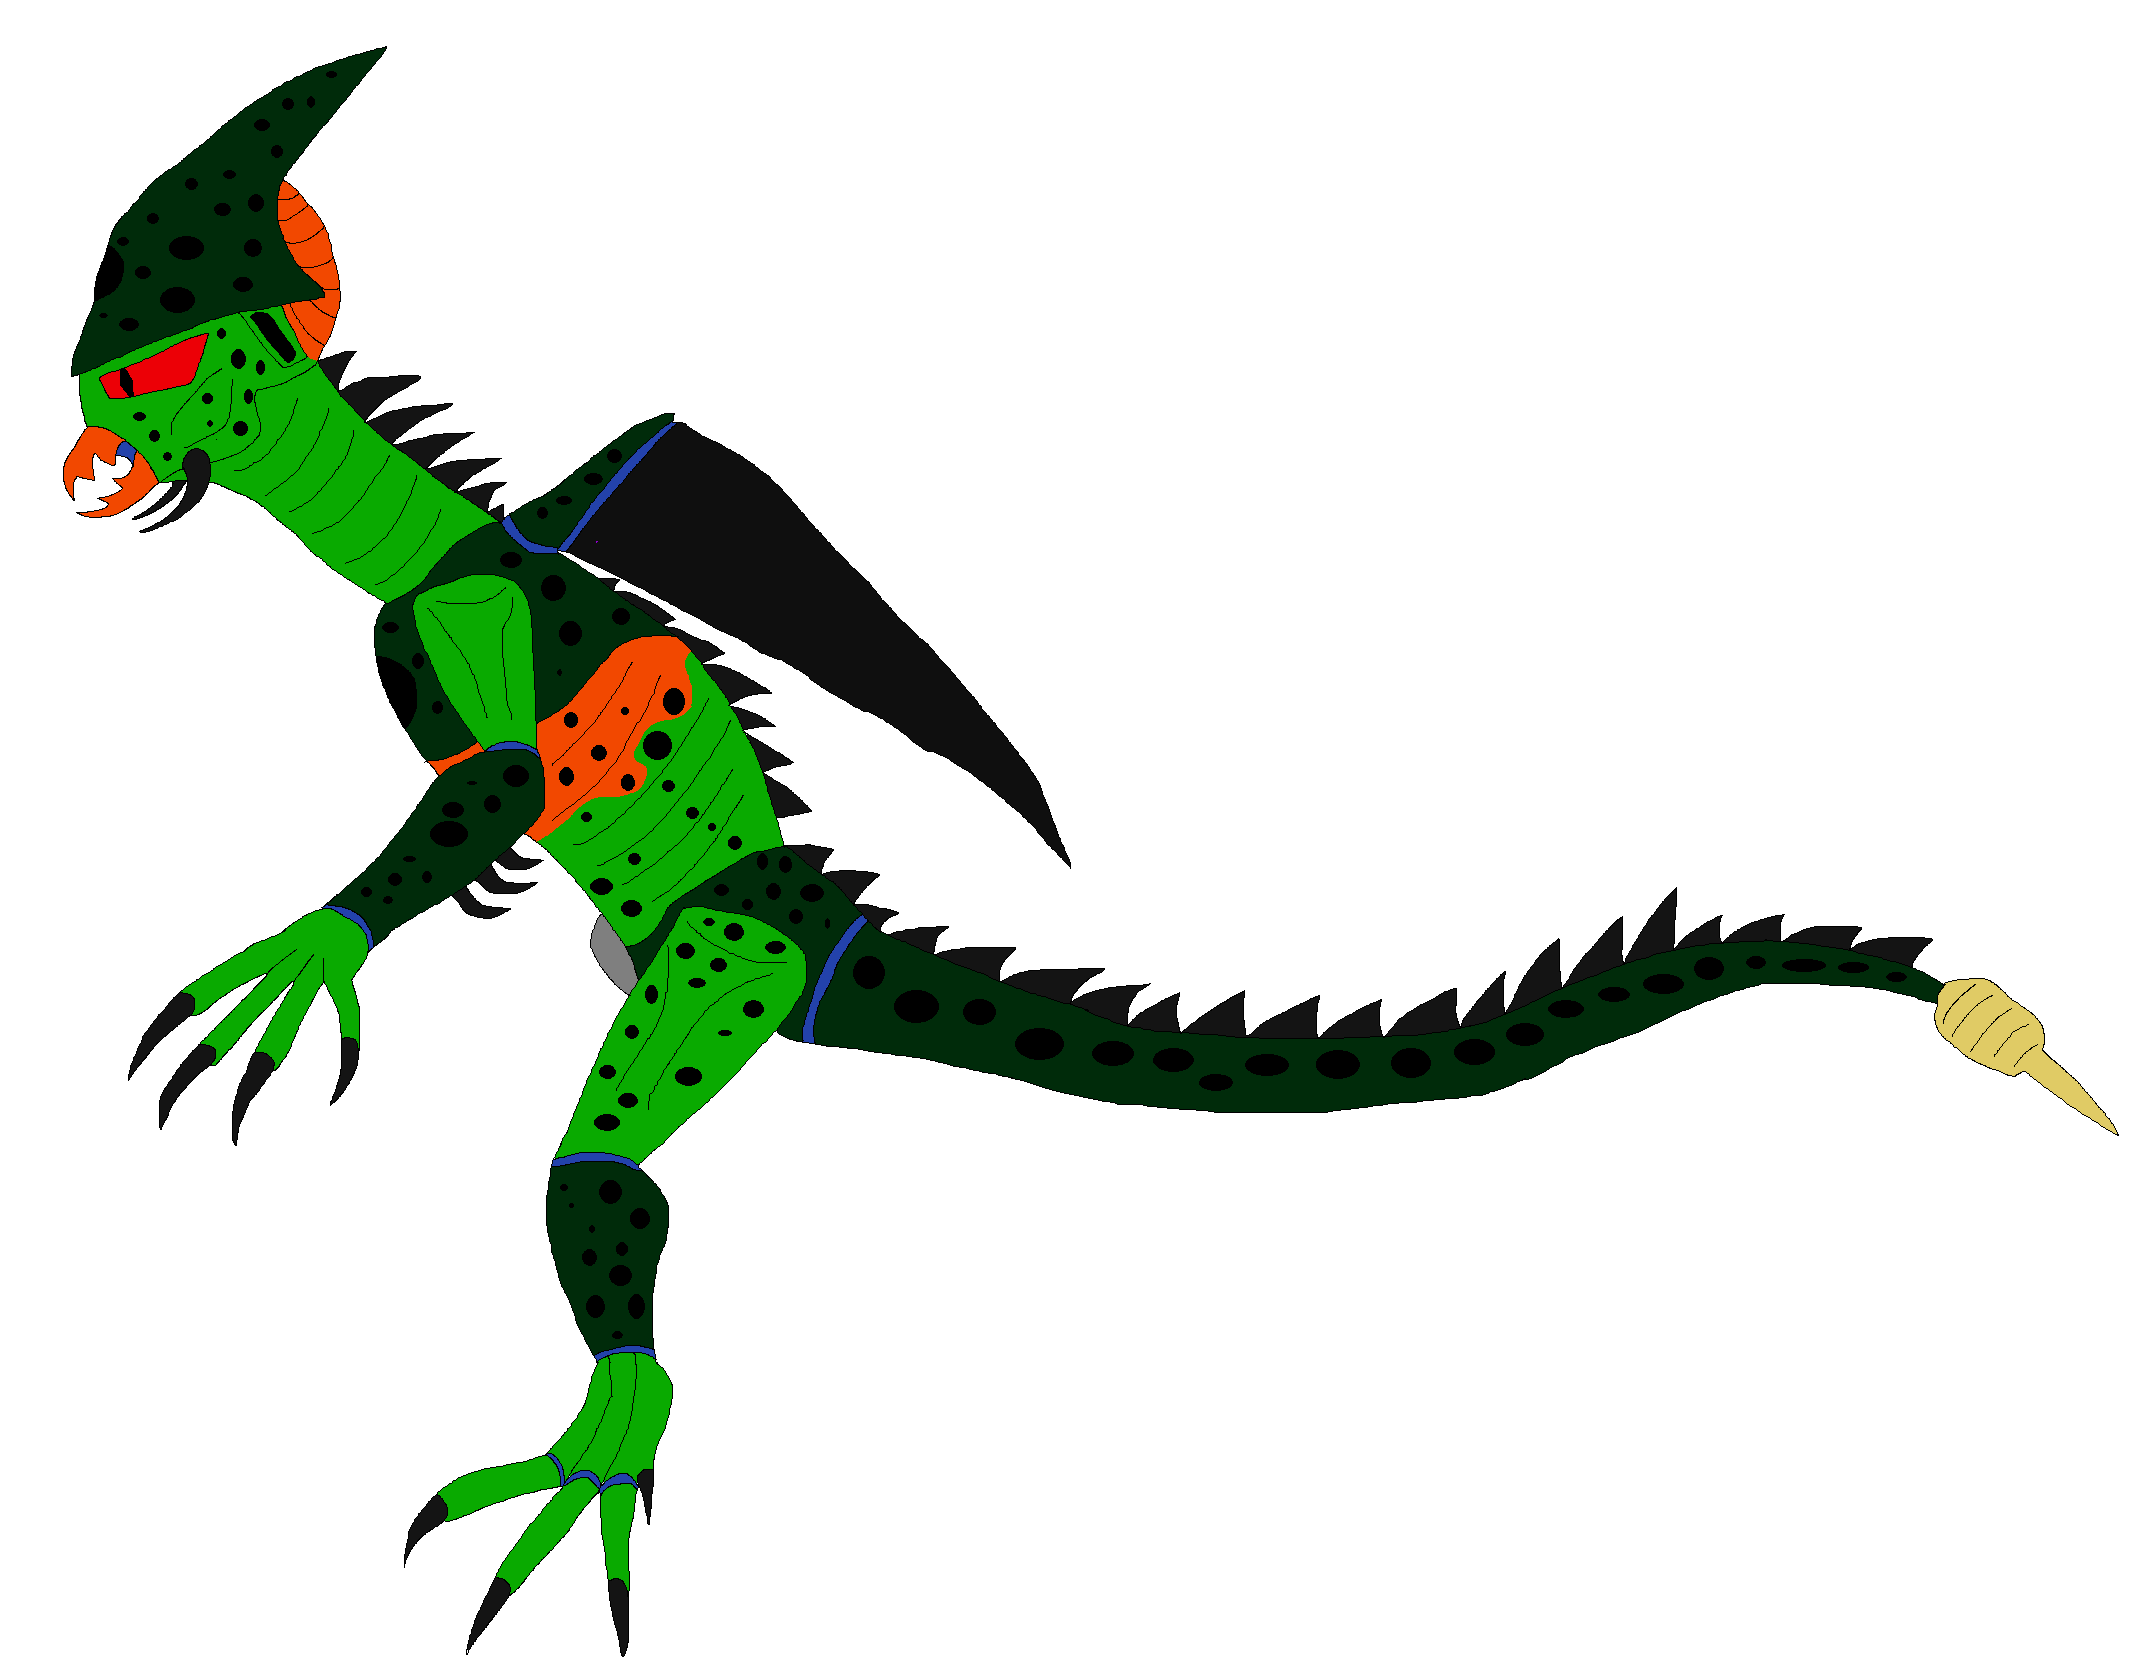 Cell - Imperfect Form by TeamDinosauria21 on DeviantArt